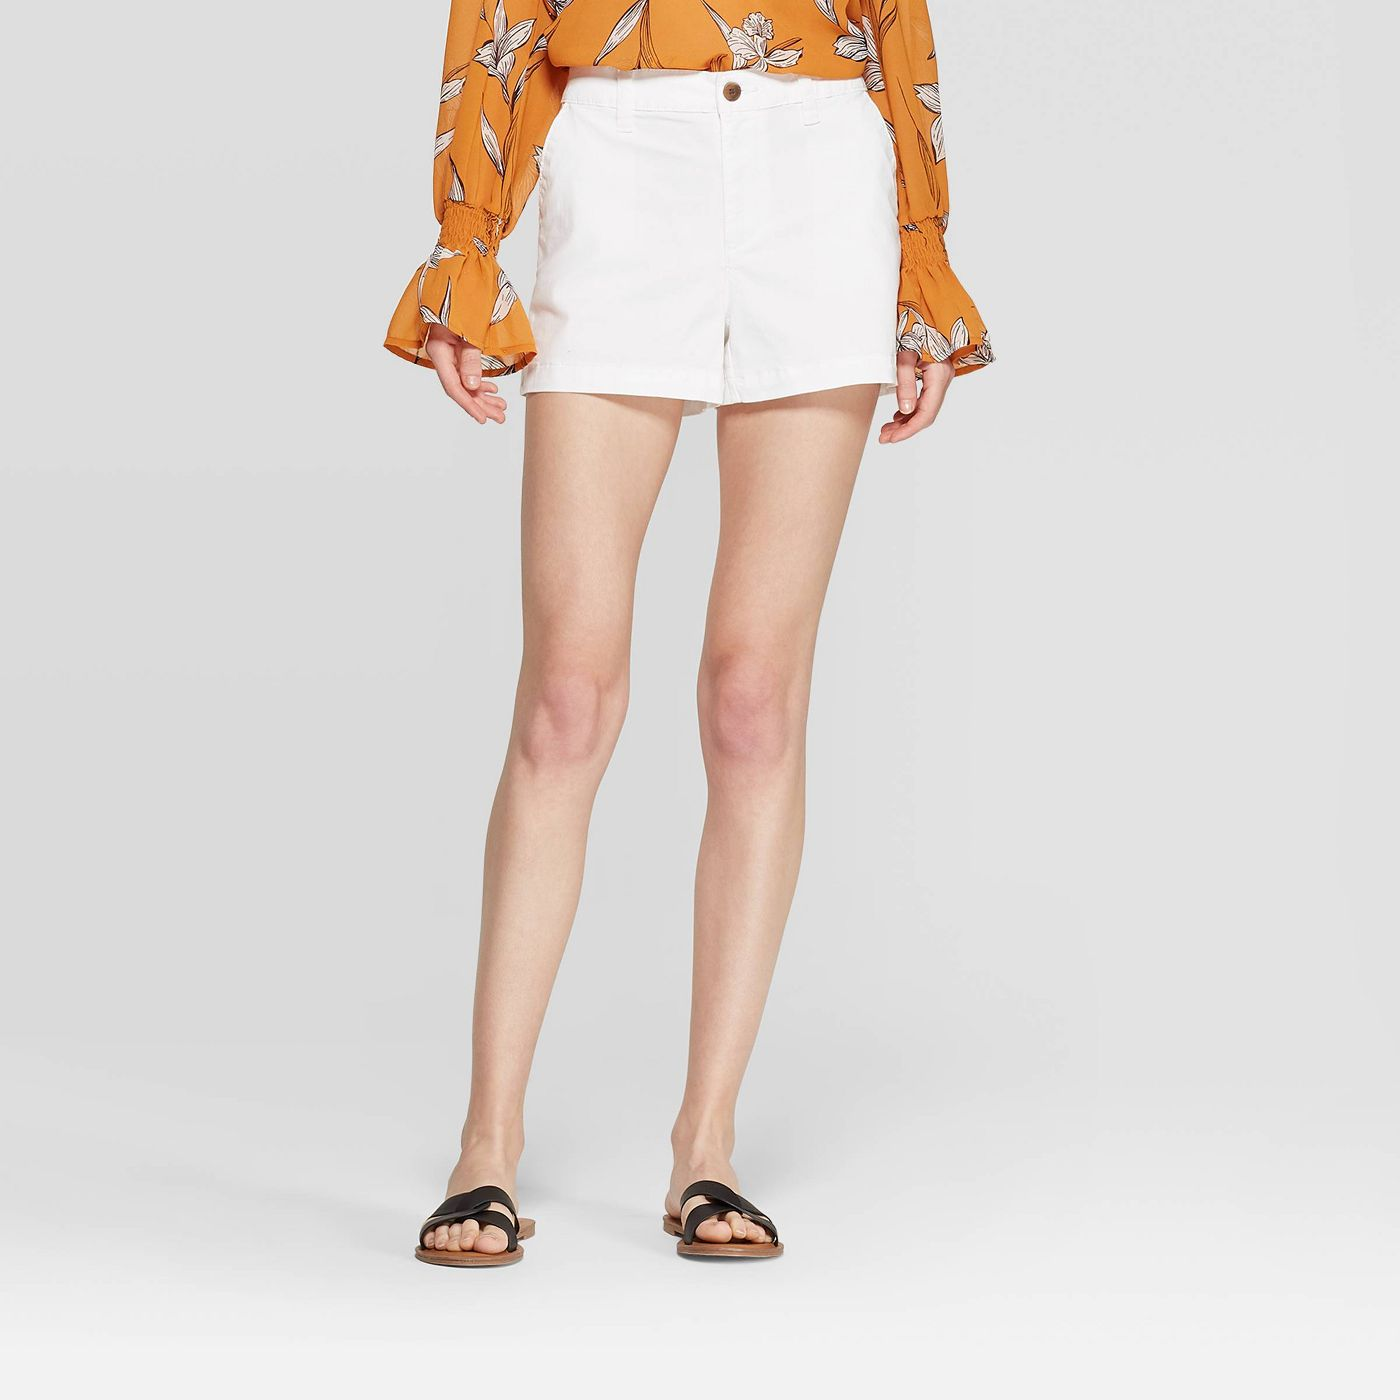 Women's High-Rise Chino Shorts - A New Day™ Fresh White - image 1 of 4